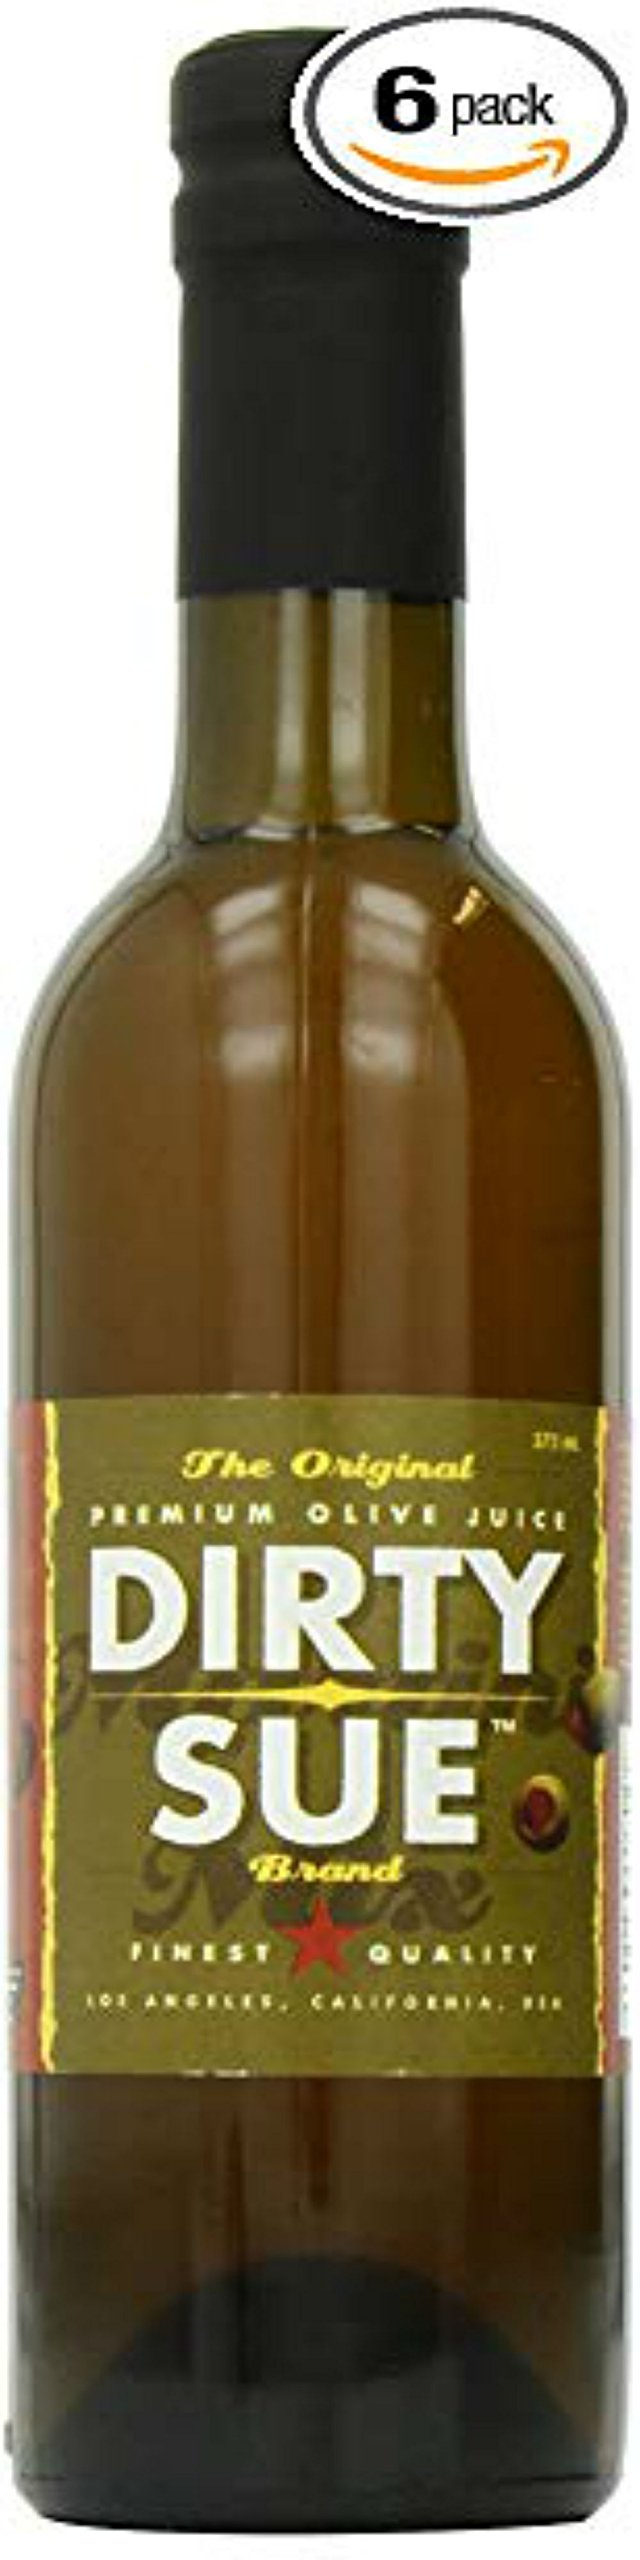 6-Pack Dirty Sue Premium Olive Juice Martini Mix 375ML (12.69oz) by Dirty Sue